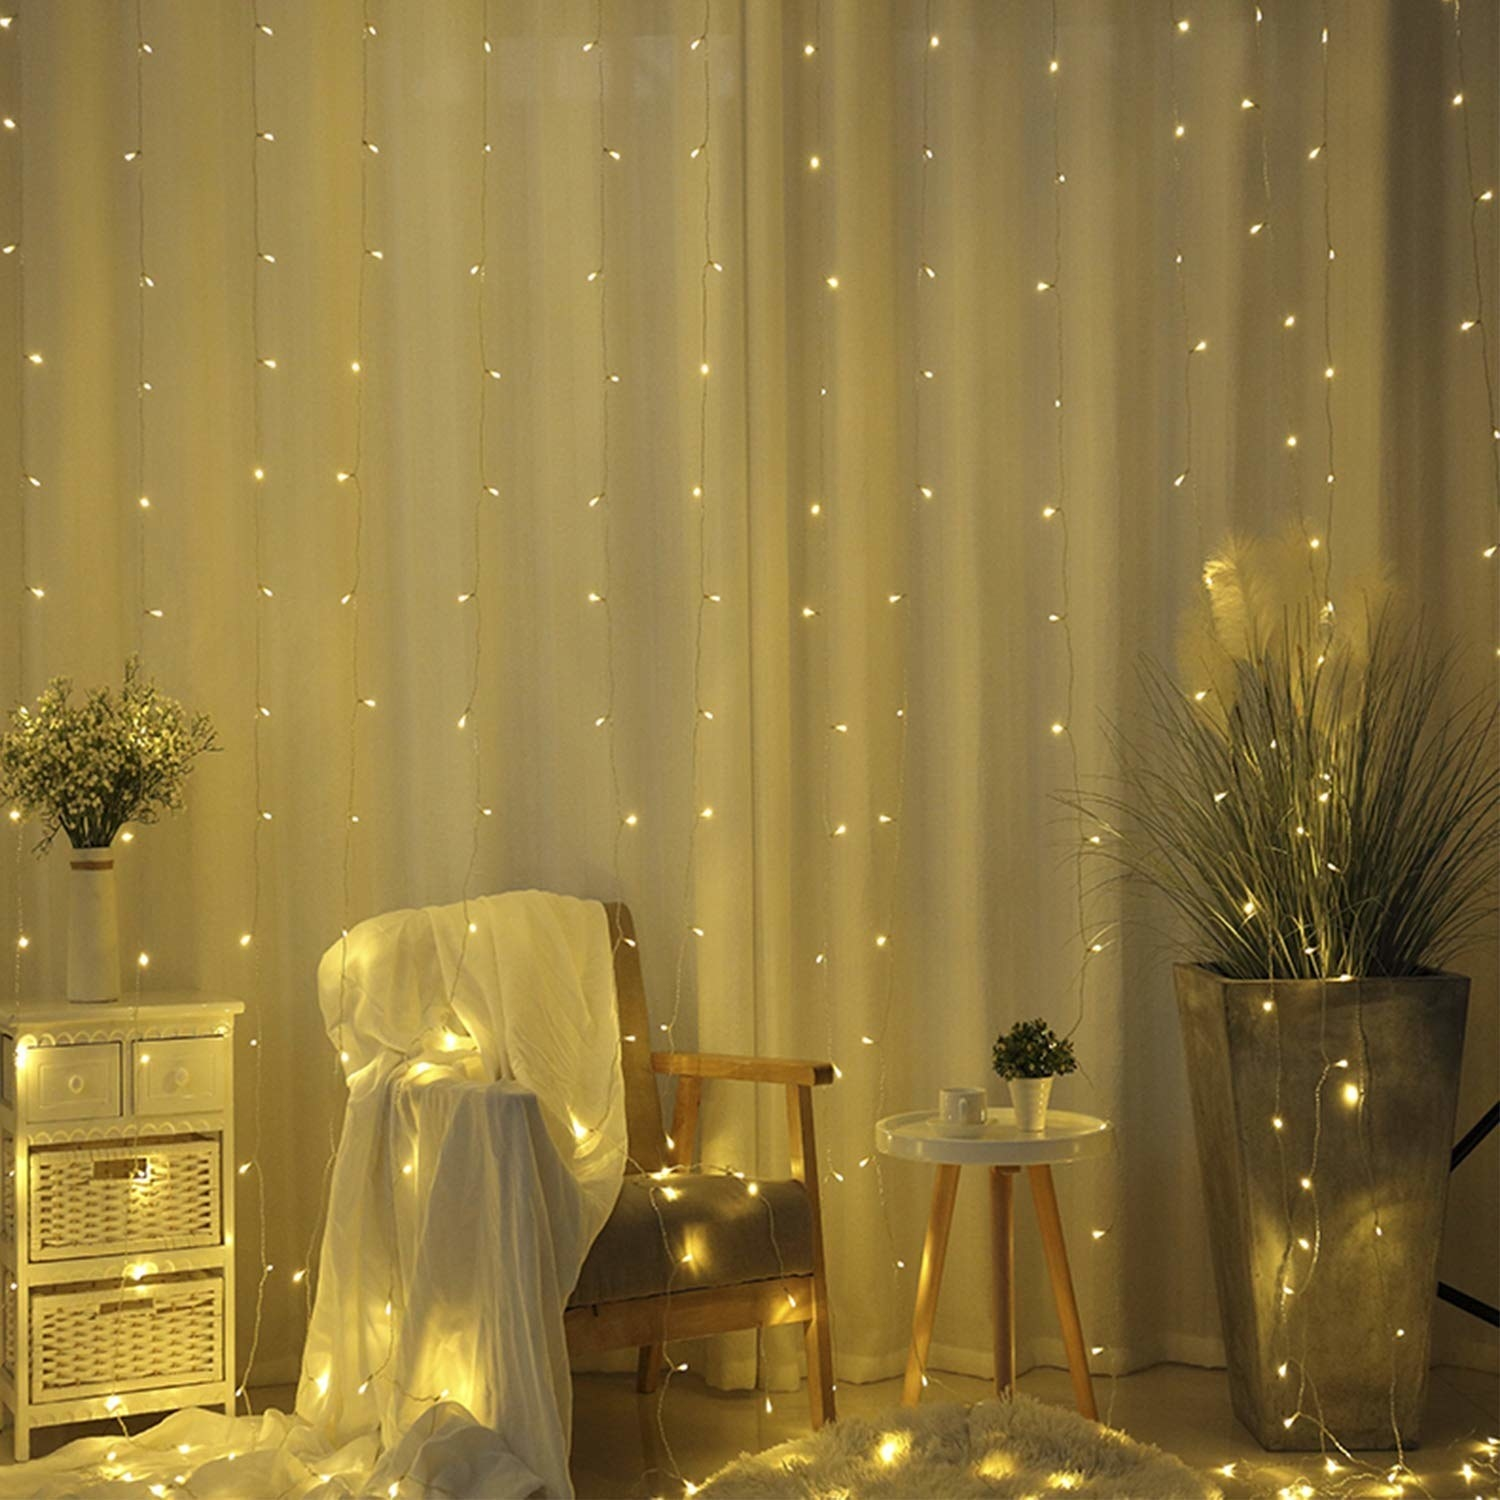 A lit up room with a plant, side tables, a chair, and curtains all covered with string lights.